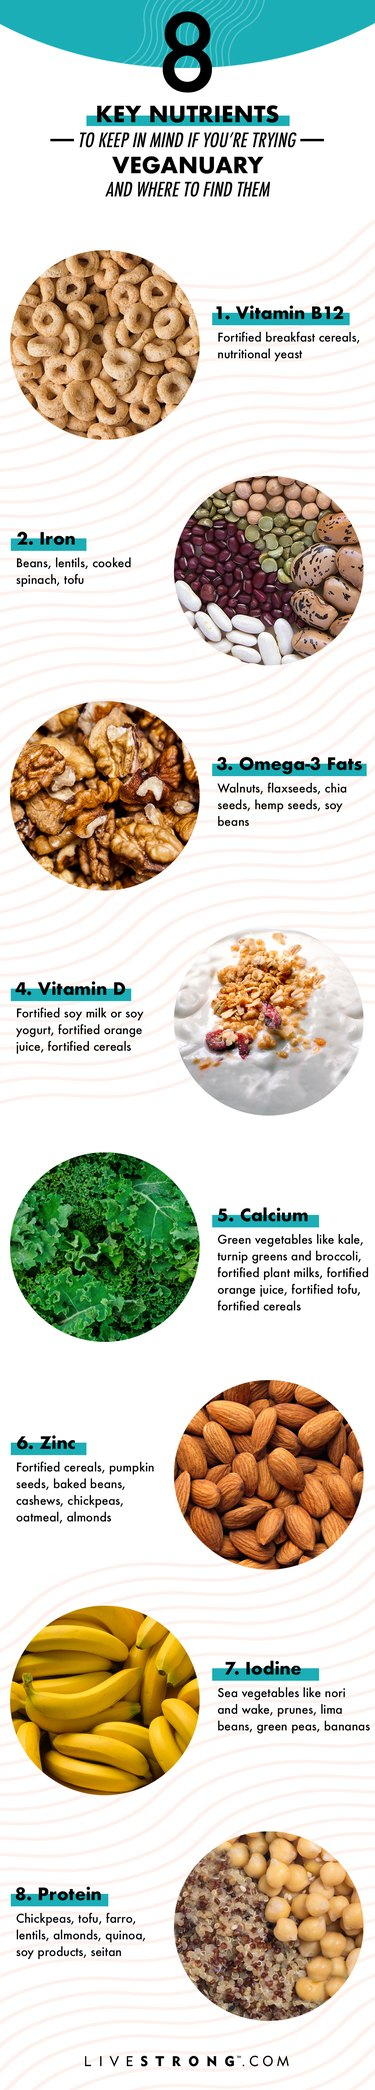 graphic of nutrients important for vegan nutrition